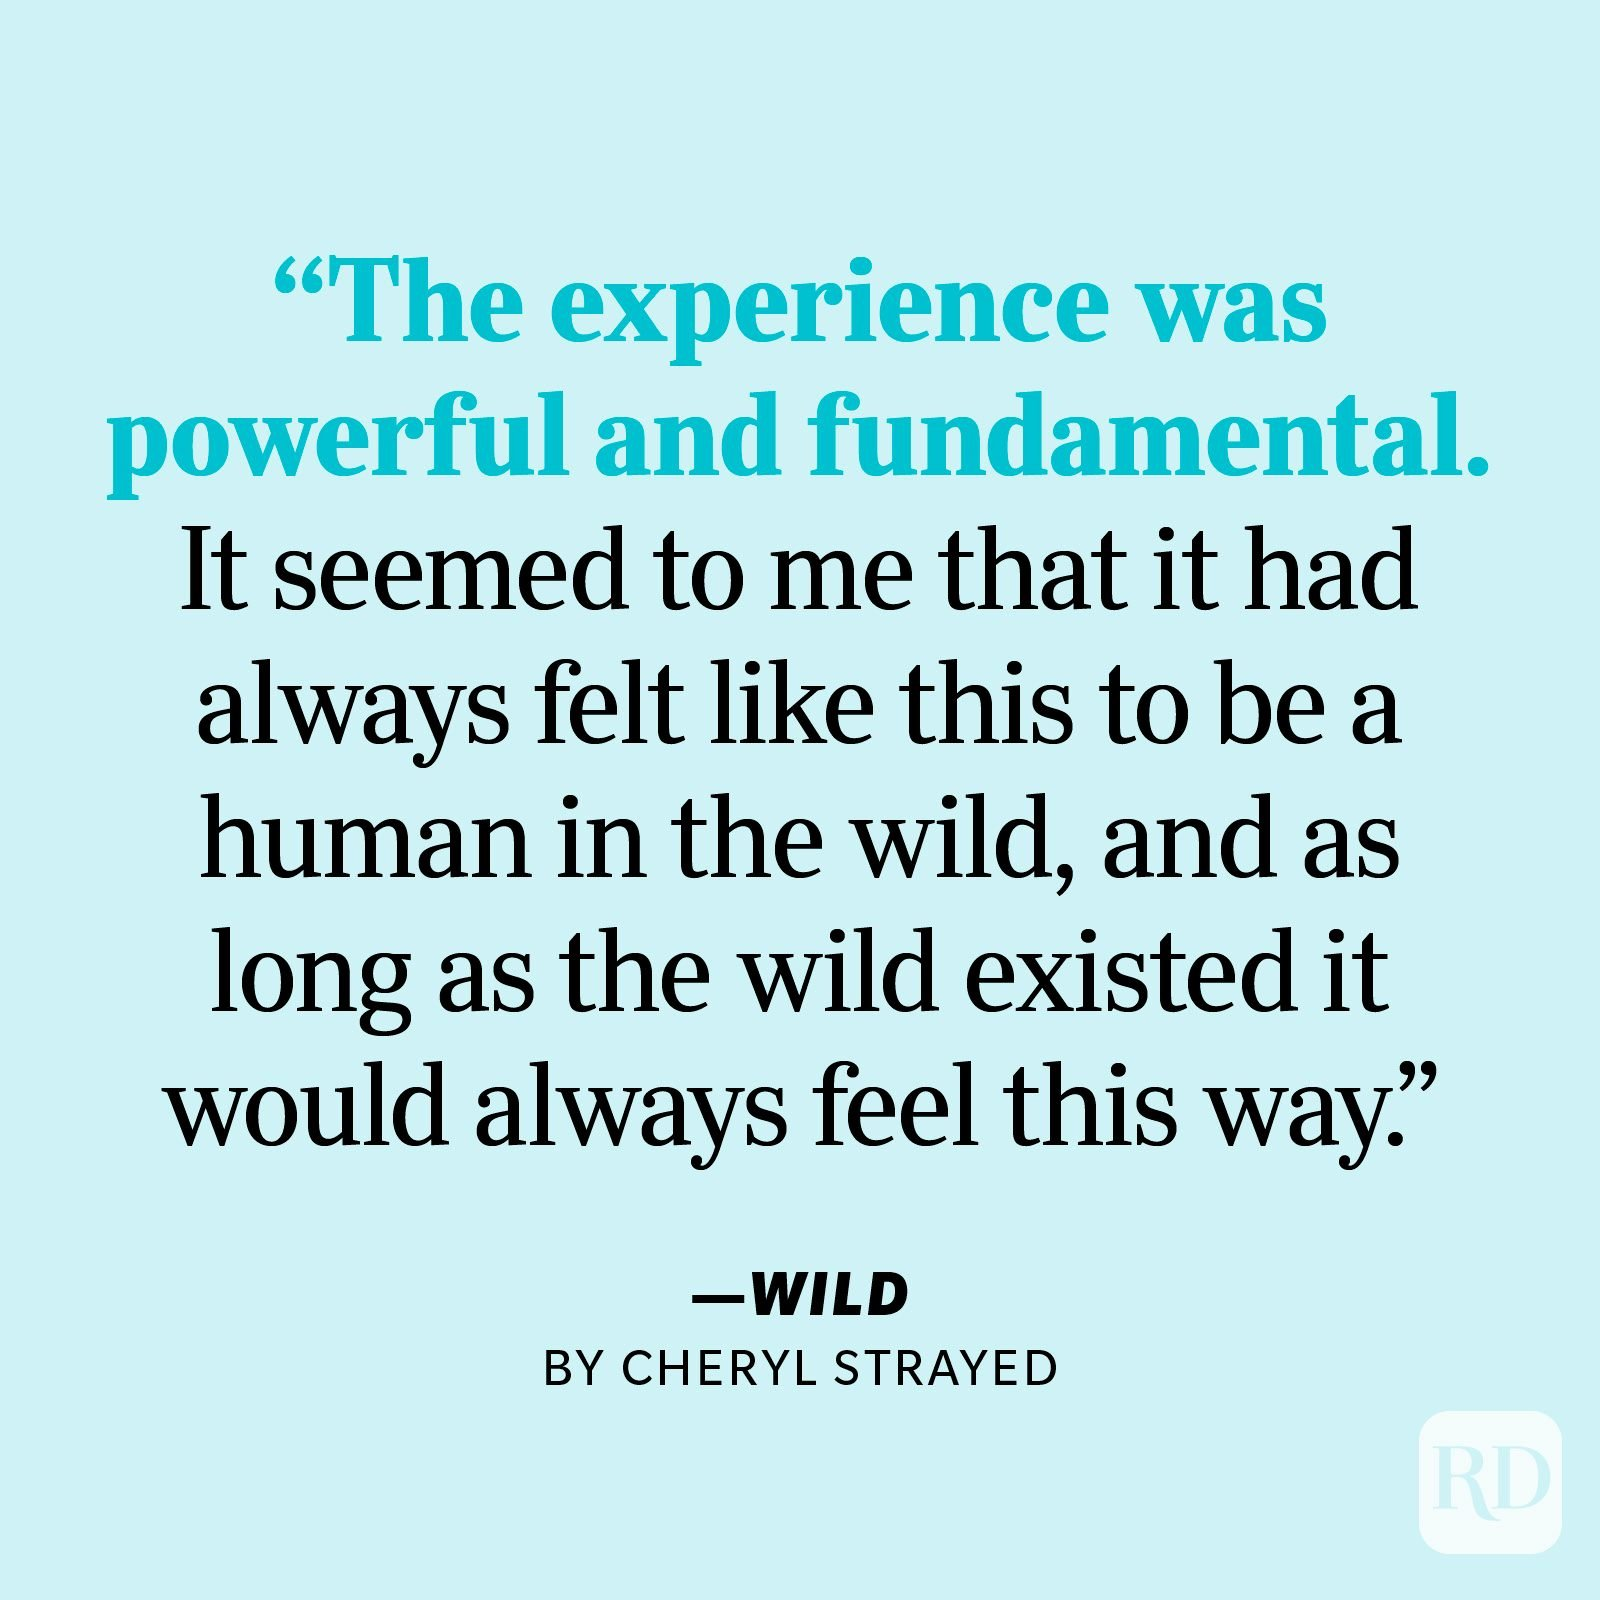 """Wild by Cheryl Strayed """"It had nothing to do with gear or footwear or the backpacking fads or philosophies of any particular era or even with getting from point A to point B. It had to do with how it felt to be in the wild. With what it was like to walk for miles with no reason other than to witness the accumulation of trees and meadows, mountains and deserts, streams and rocks, rivers and grasses, sunrises and sunsets. The experience was powerful and fundamental. It seemed to me that it had always felt like this to be a human in the wild, and as long as the wild existed it would always feel this way."""""""